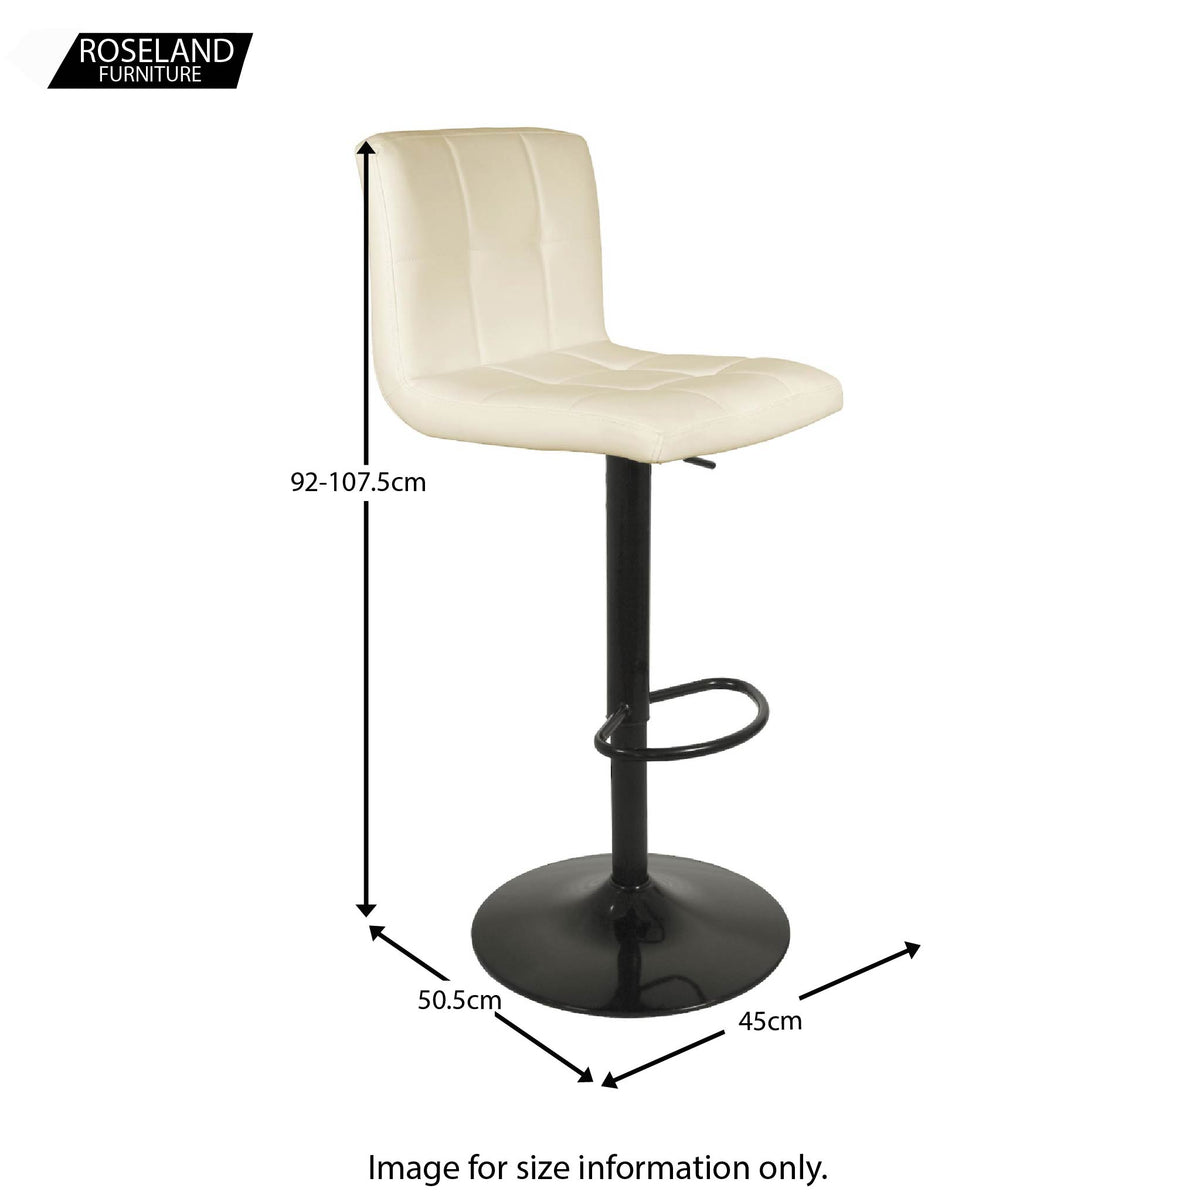 Dimensions for the Vanilla Cream Elton Adjustable Breakfast Bar Stool from Roseland Furniture